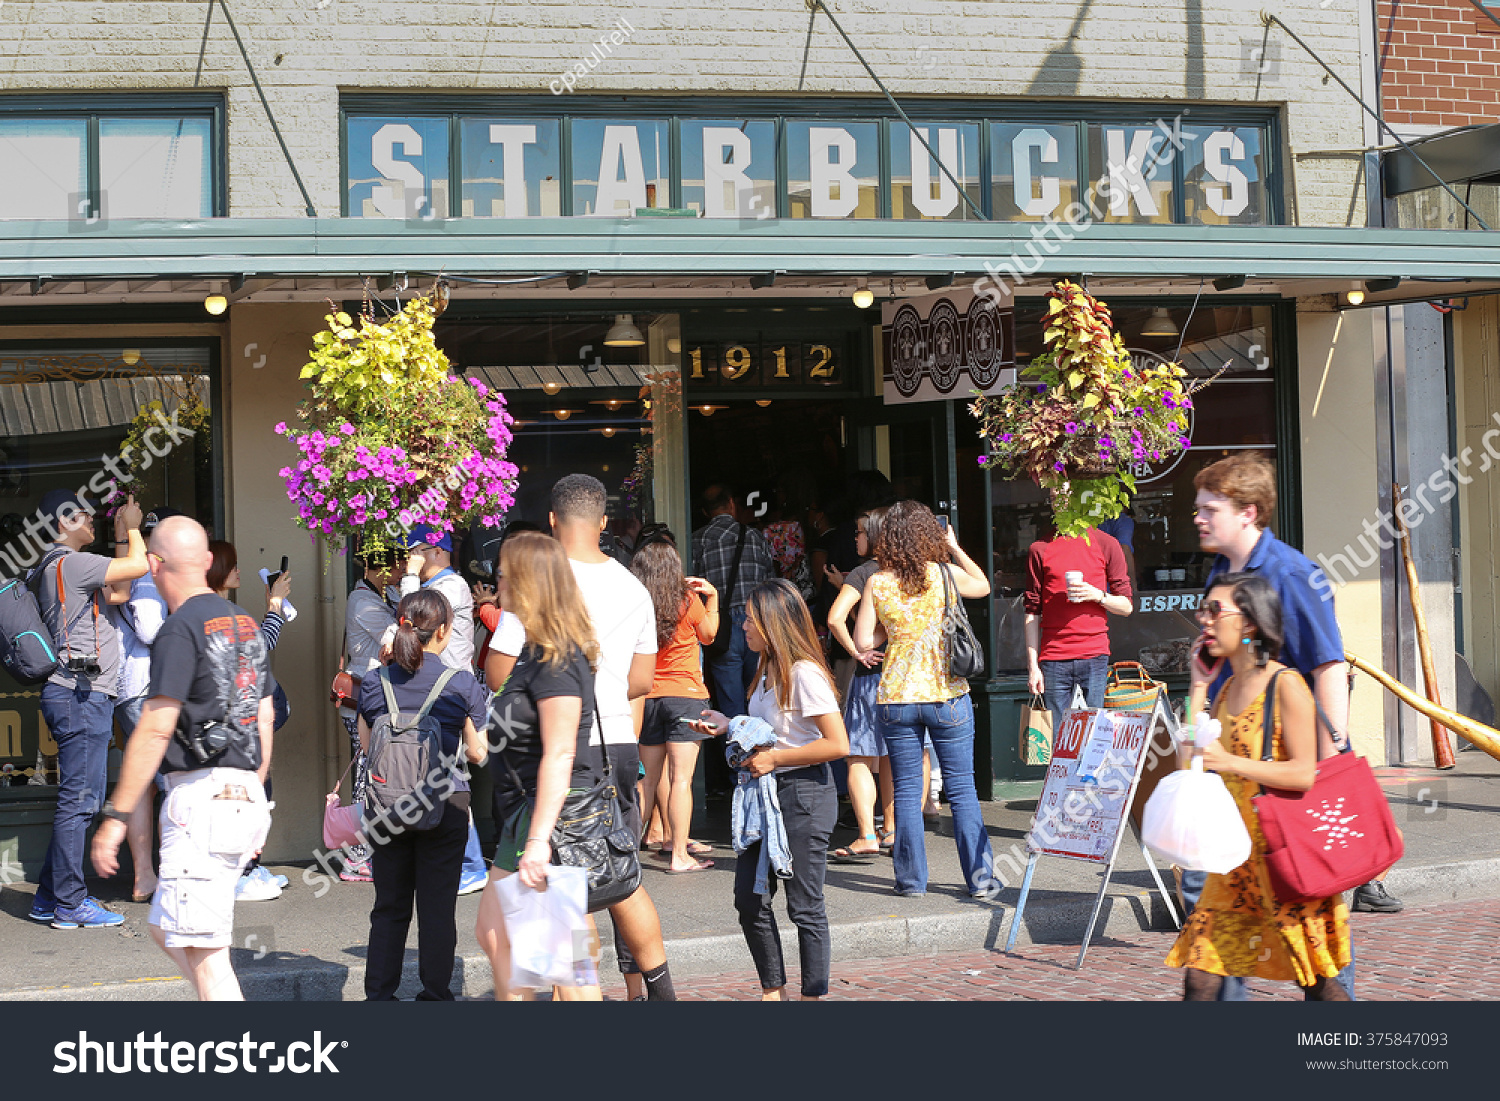 stock-photo-seattle-september-pike-place